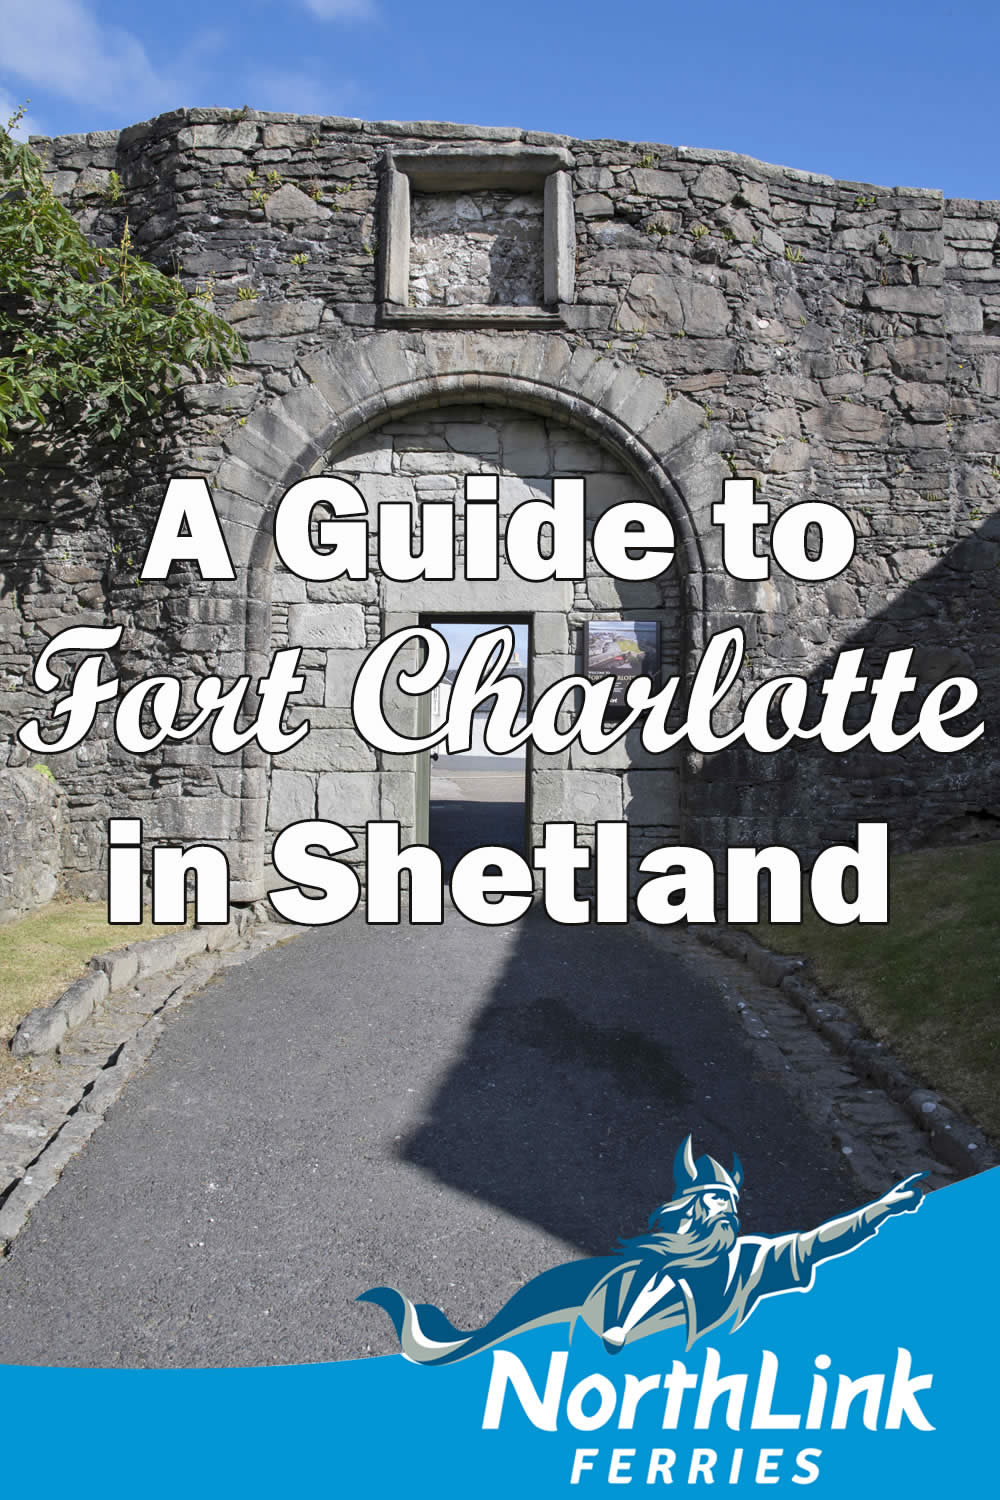 A Guide to Fort Charlotte in Shetland